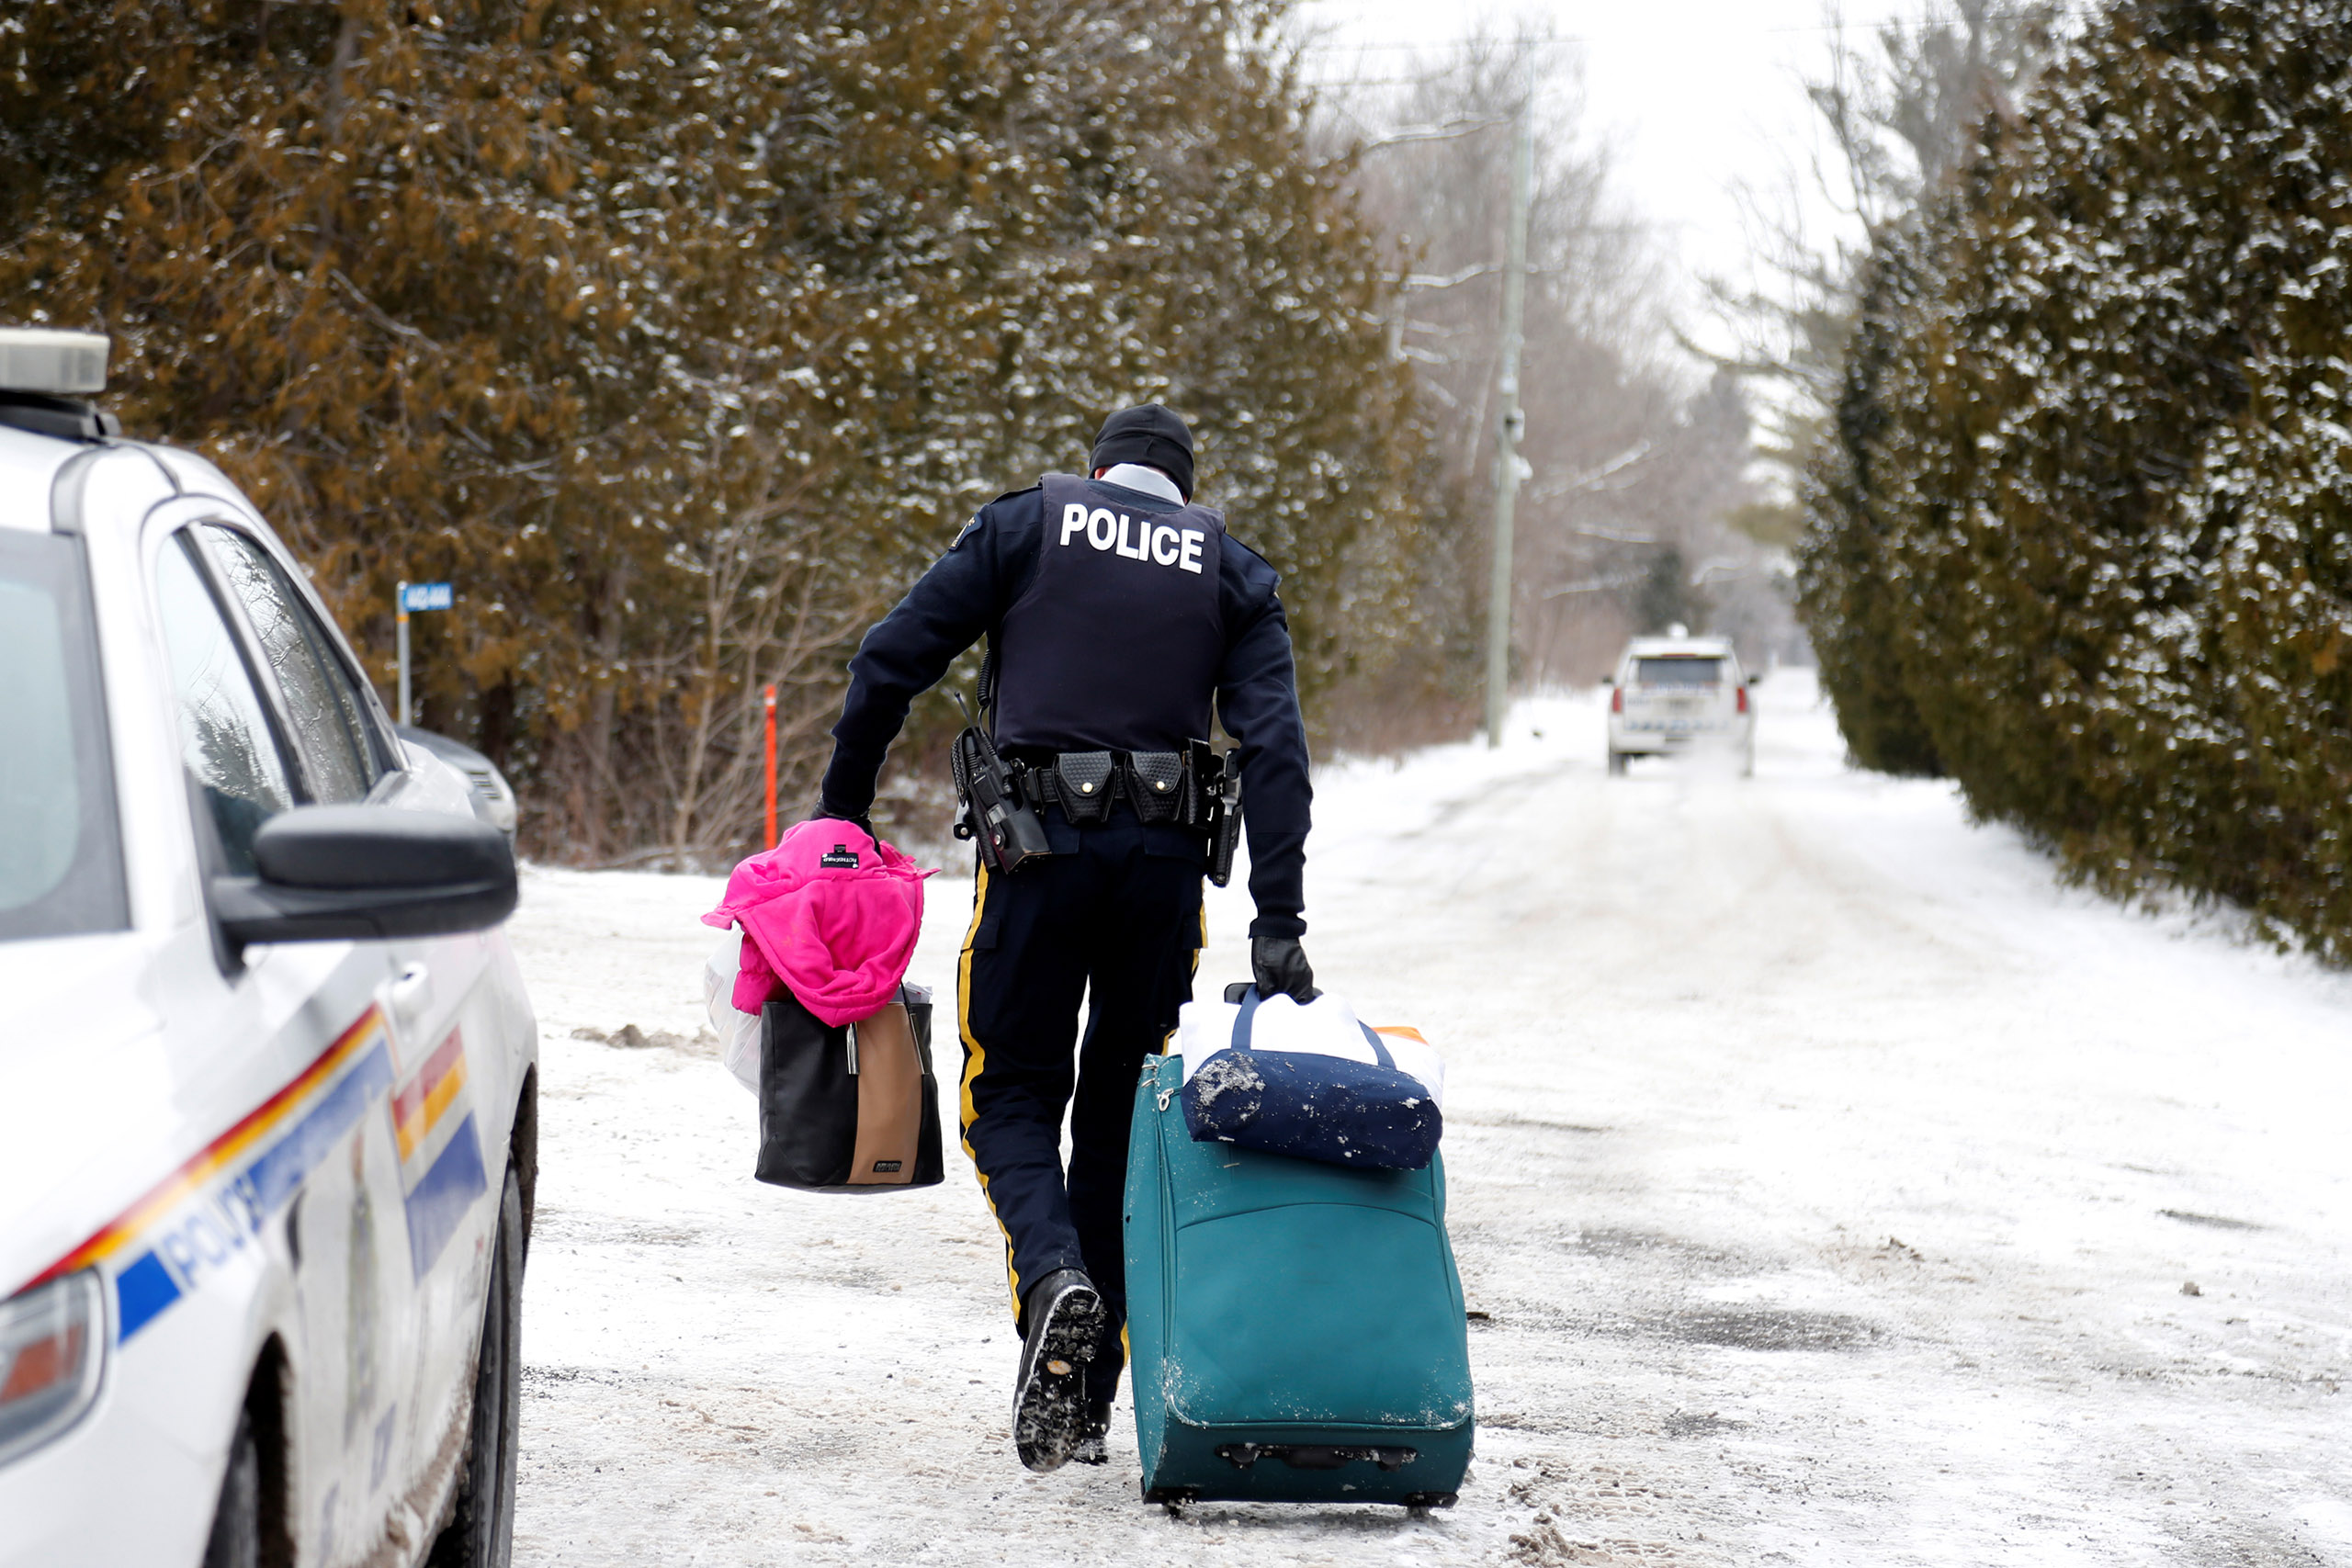 A Royal Canadian Mounted Police (RCMP) officer carries luggage of a woman and her family who told police they were from Sudan and were taken into custody after arriving by taxi and walking across the U.S.-Canada border into Hemmingford, Quebec, on Feb. 12, 2017.